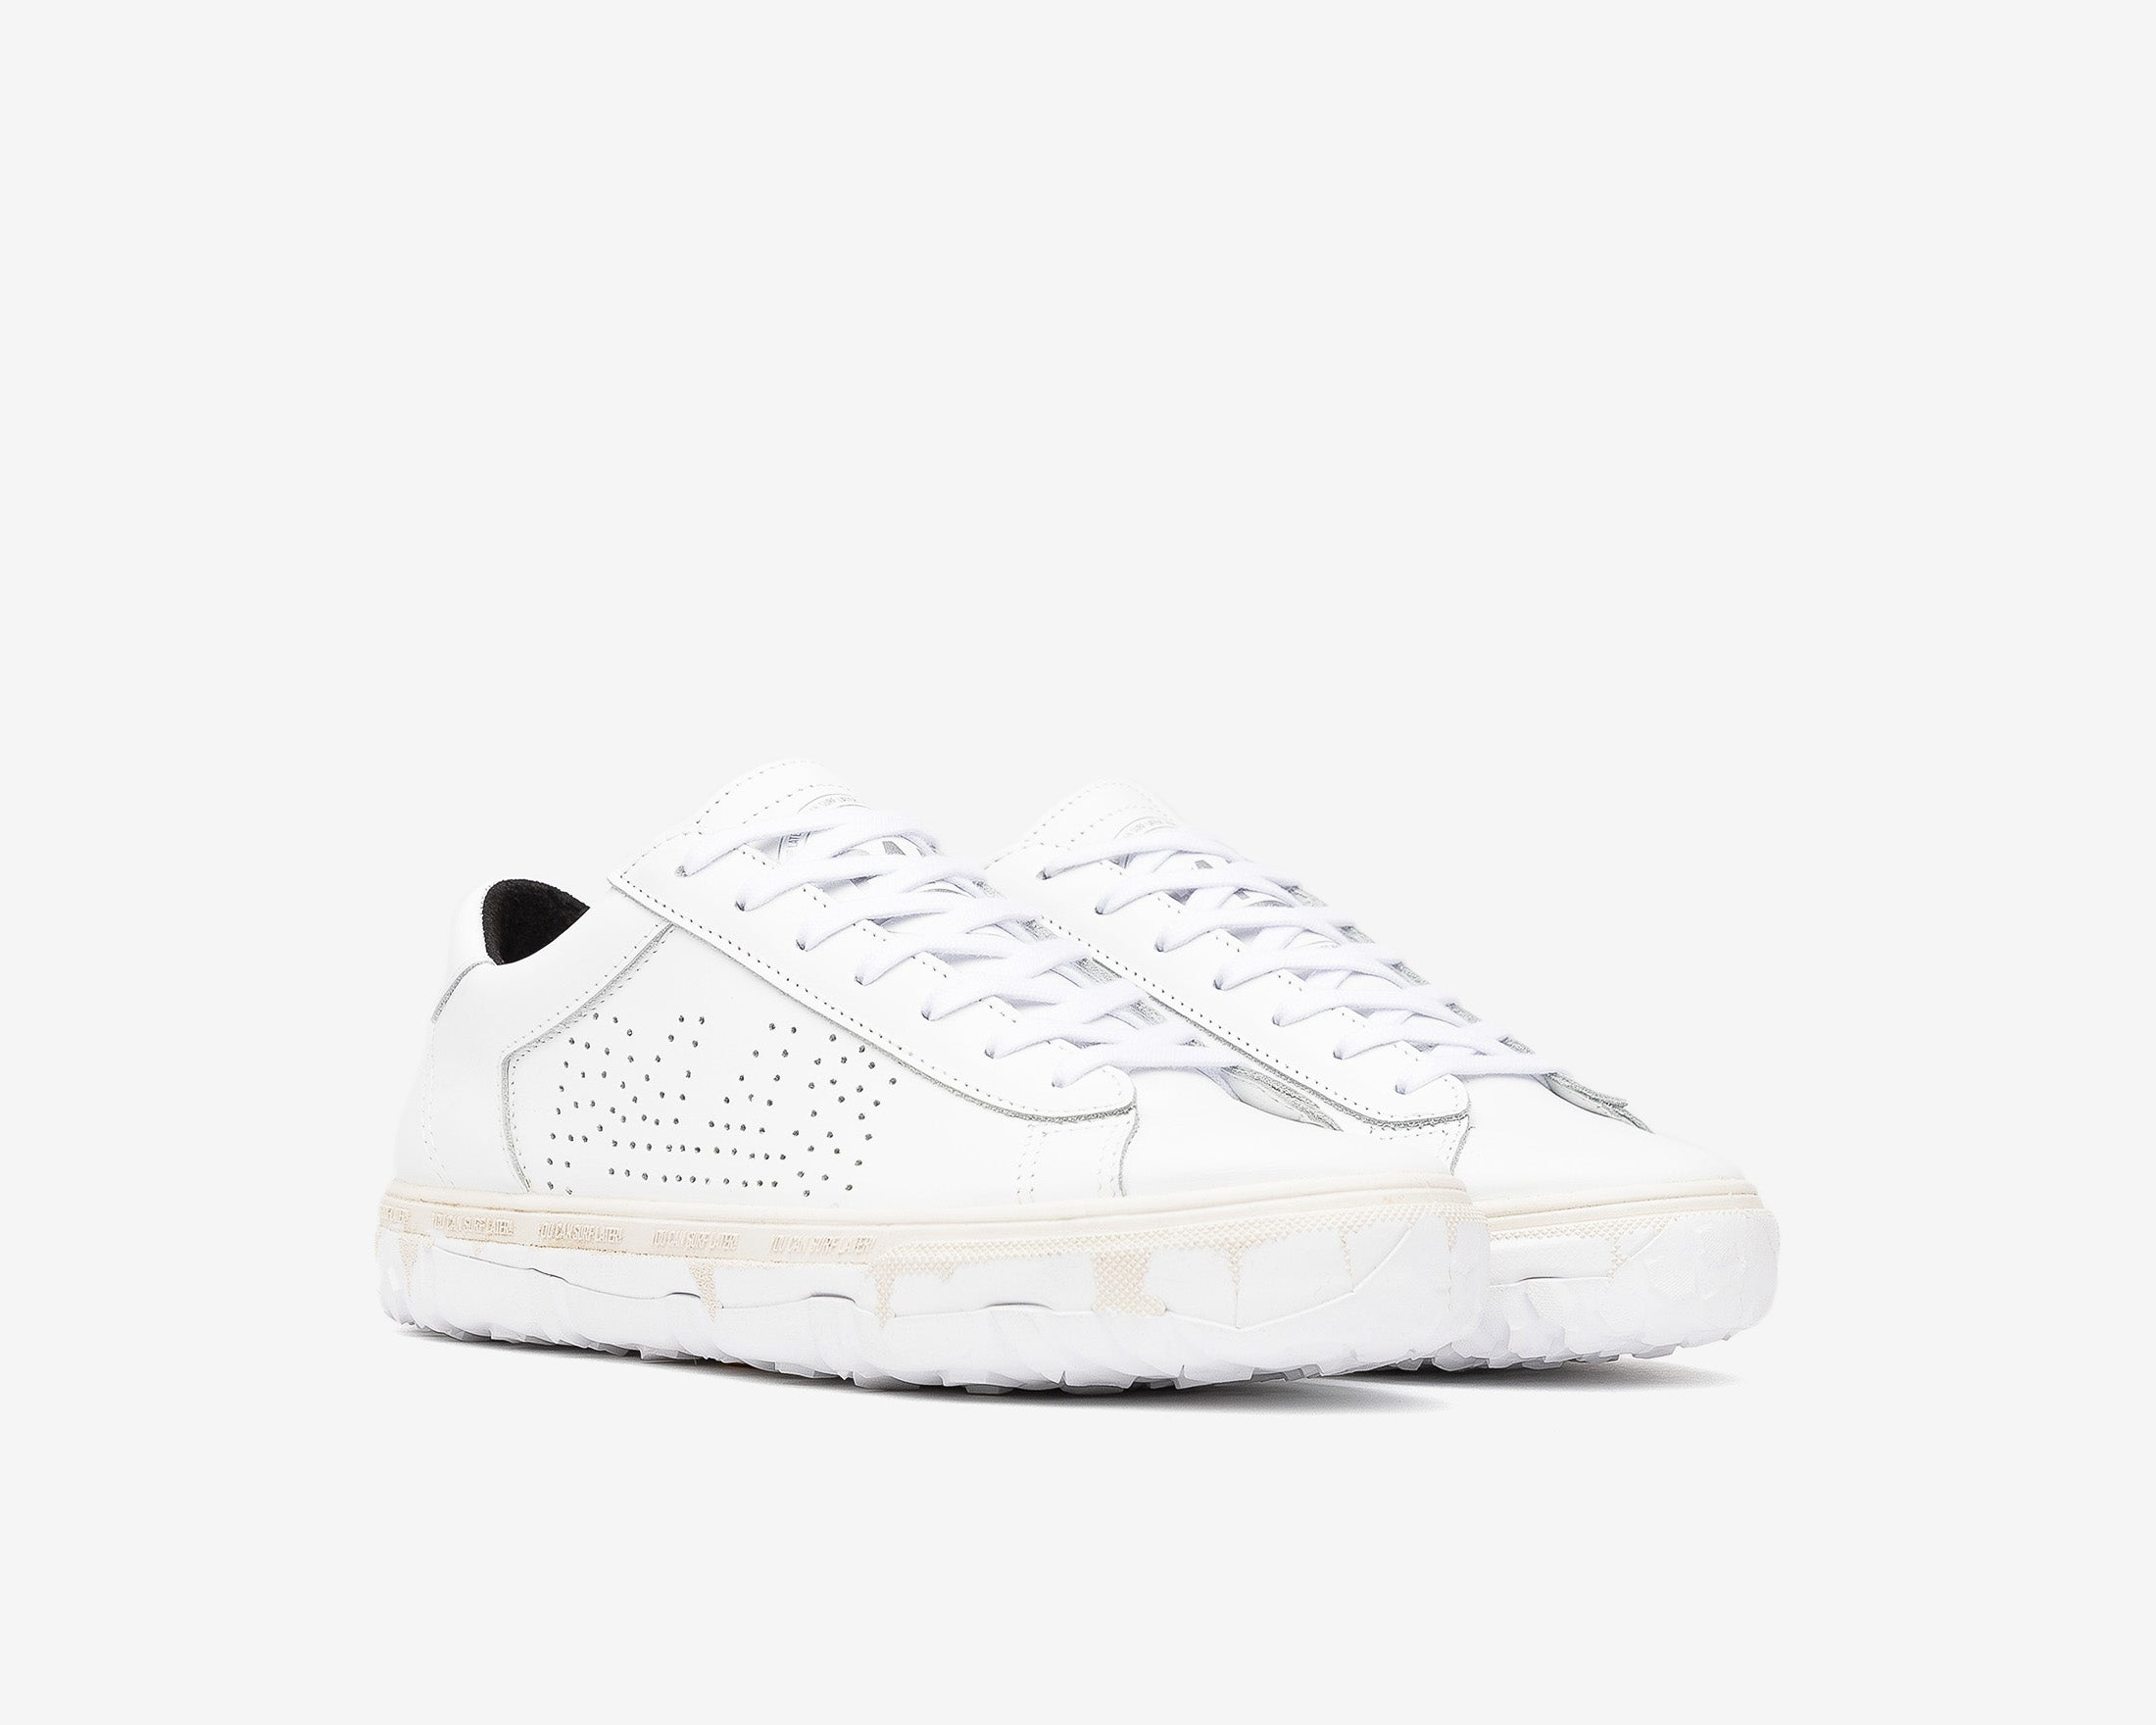 Y.C.S.L. Vibram Low-Top Sneaker in White/White - Side